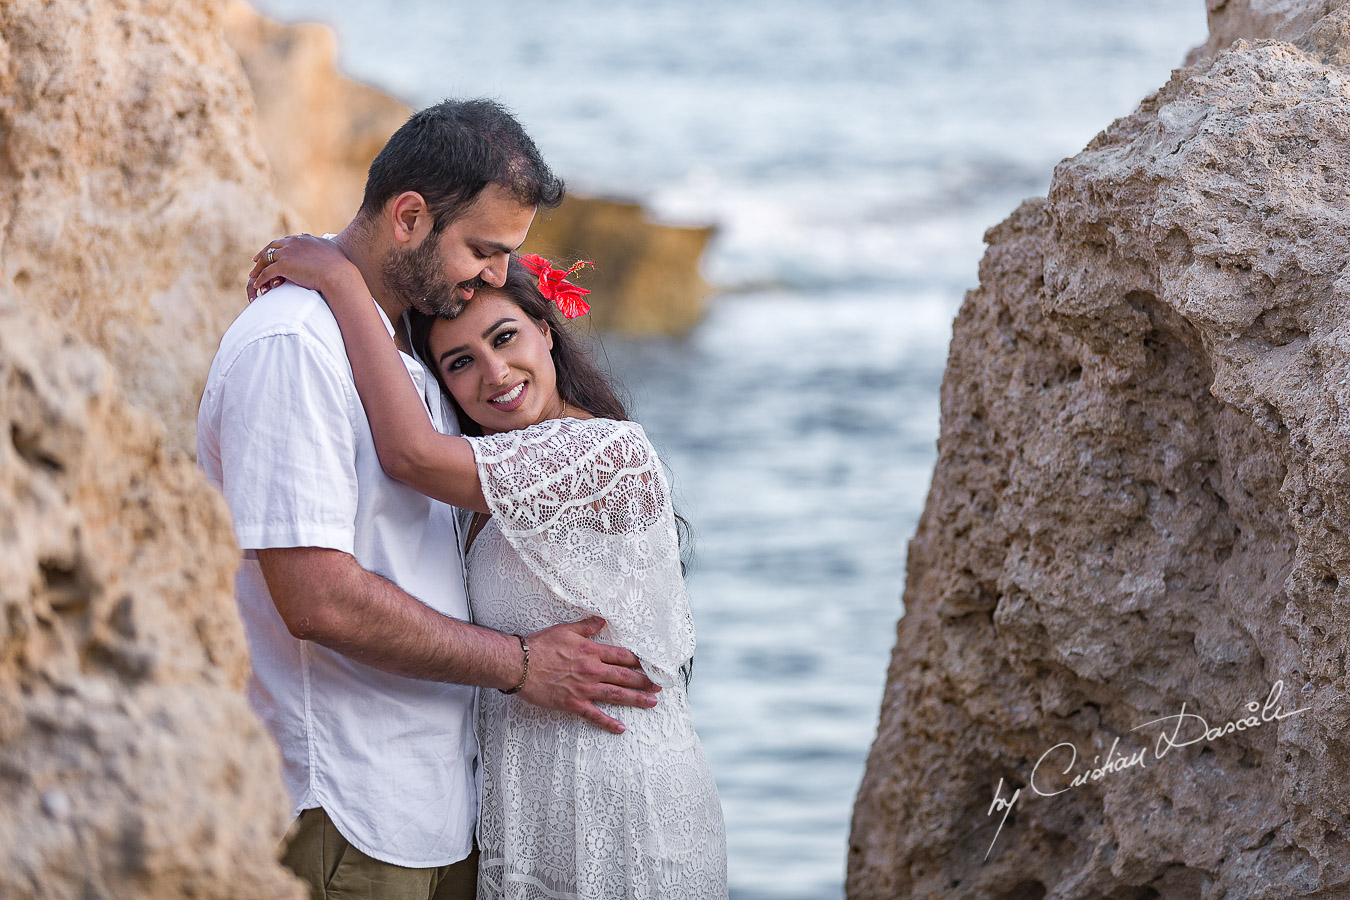 Beautiful Sucheta photogrpahed together with Vikram at the luxurious King Evelthon Hotel in Paphos, Cyprus.